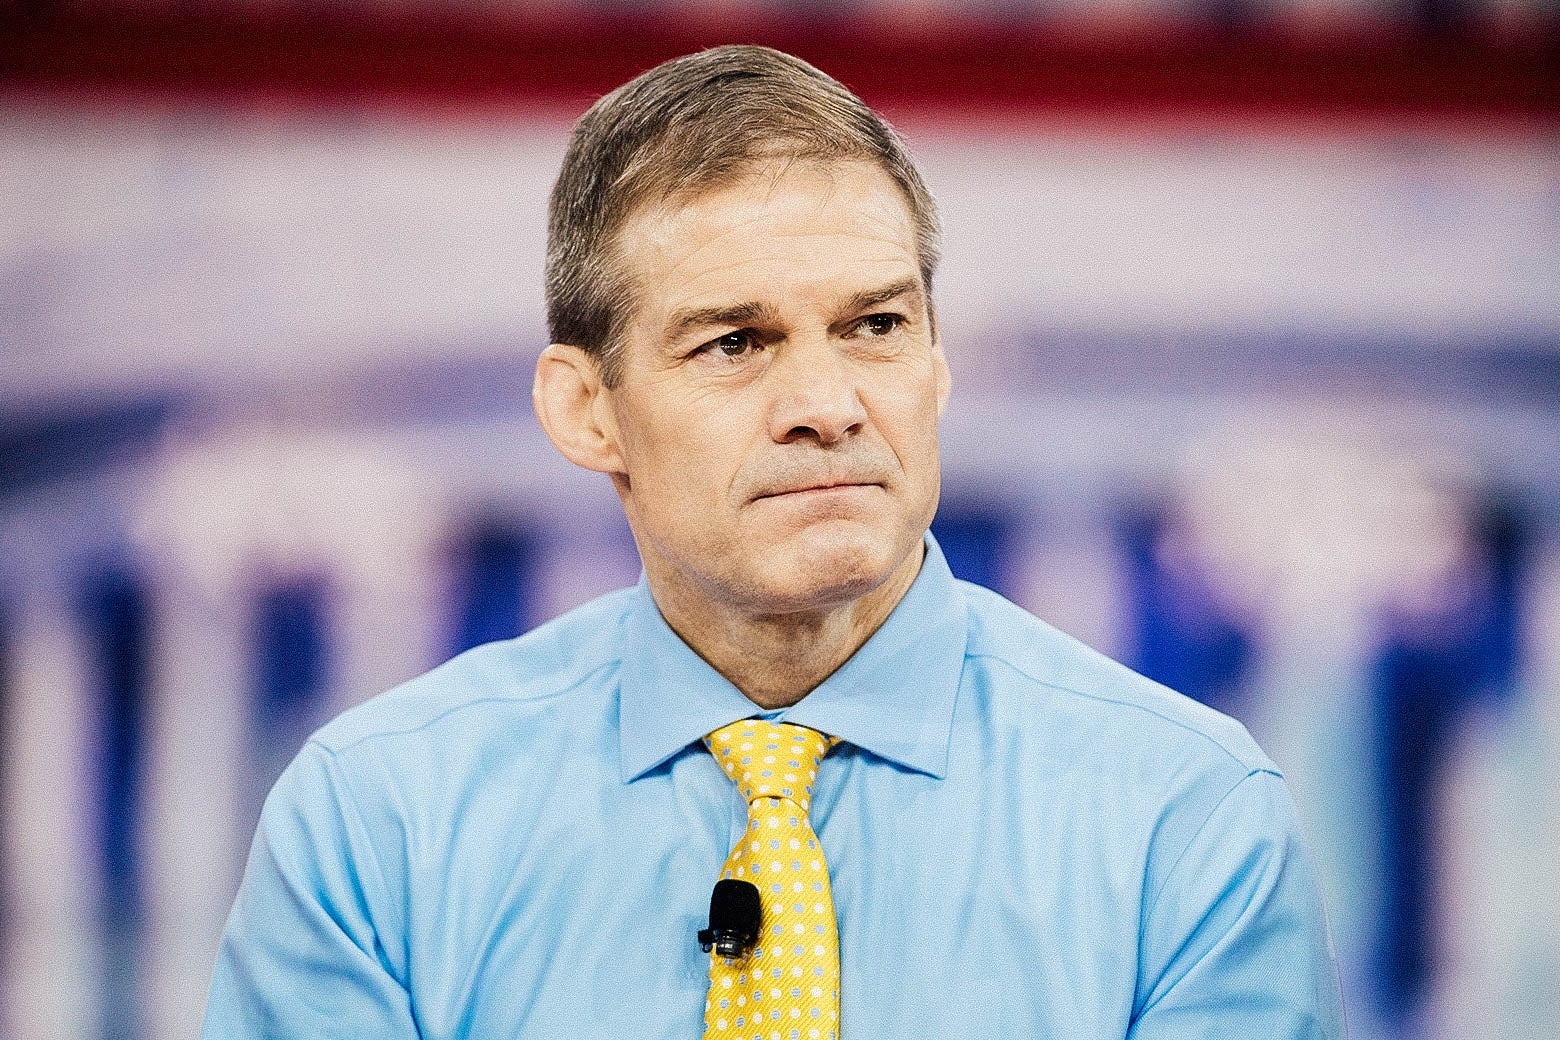 Ohio Rep. Jim Jordan, as seen at the Conservative Political Action Conference in Oxon Hill, Maryland.